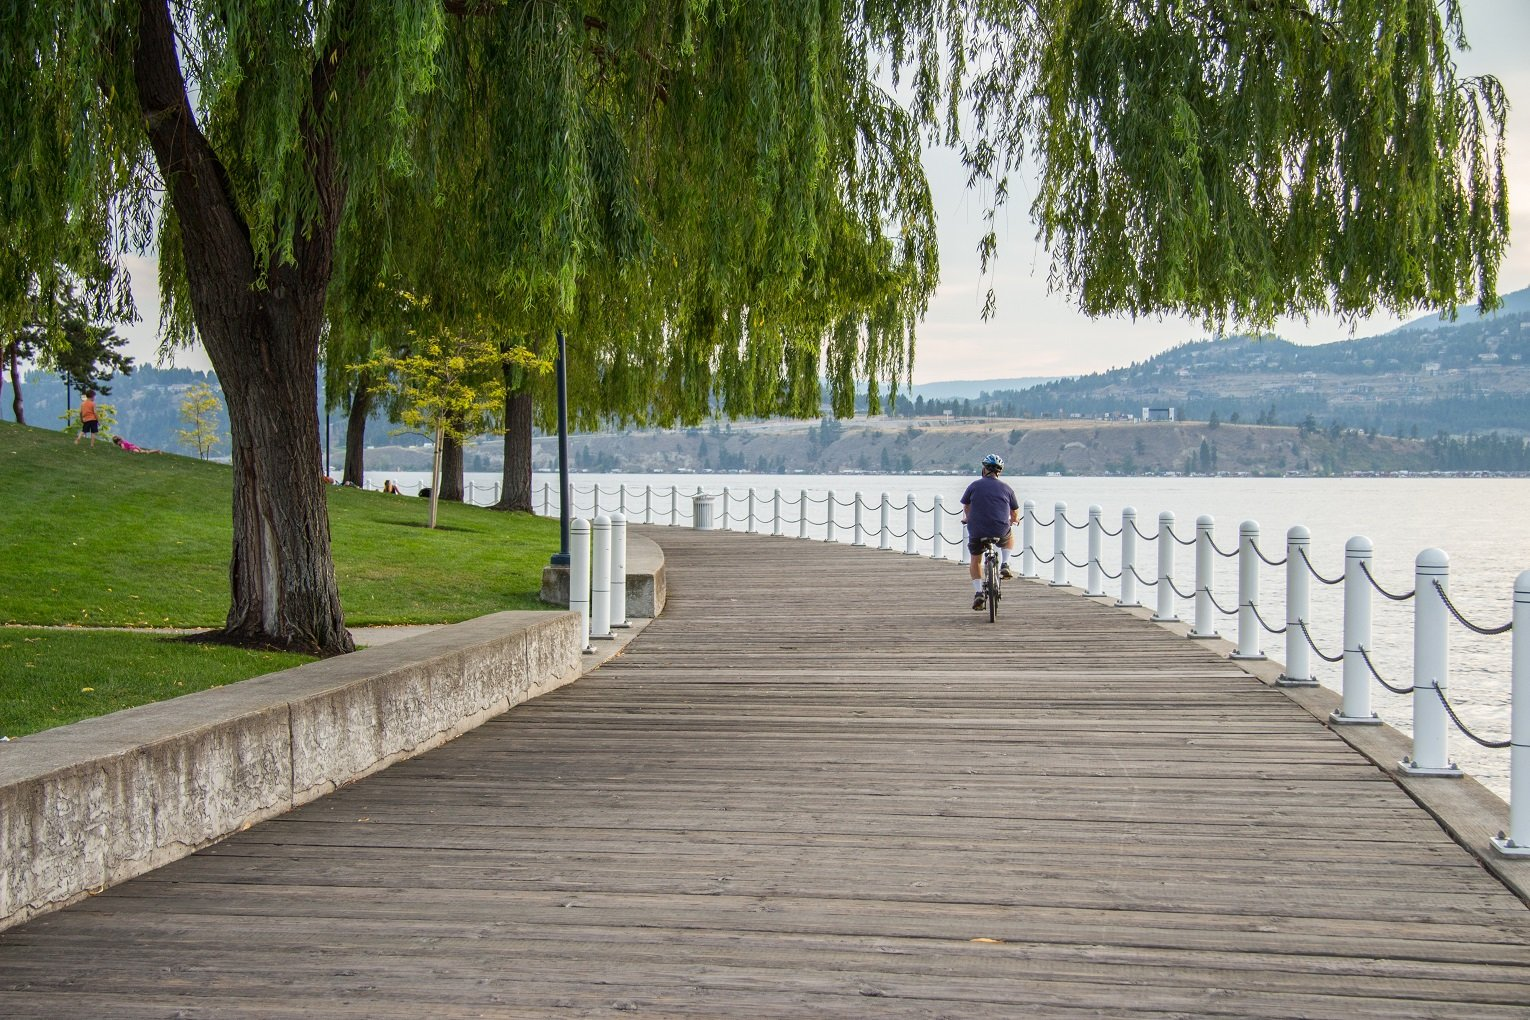 Okanagan hotel man cycling across the bridge